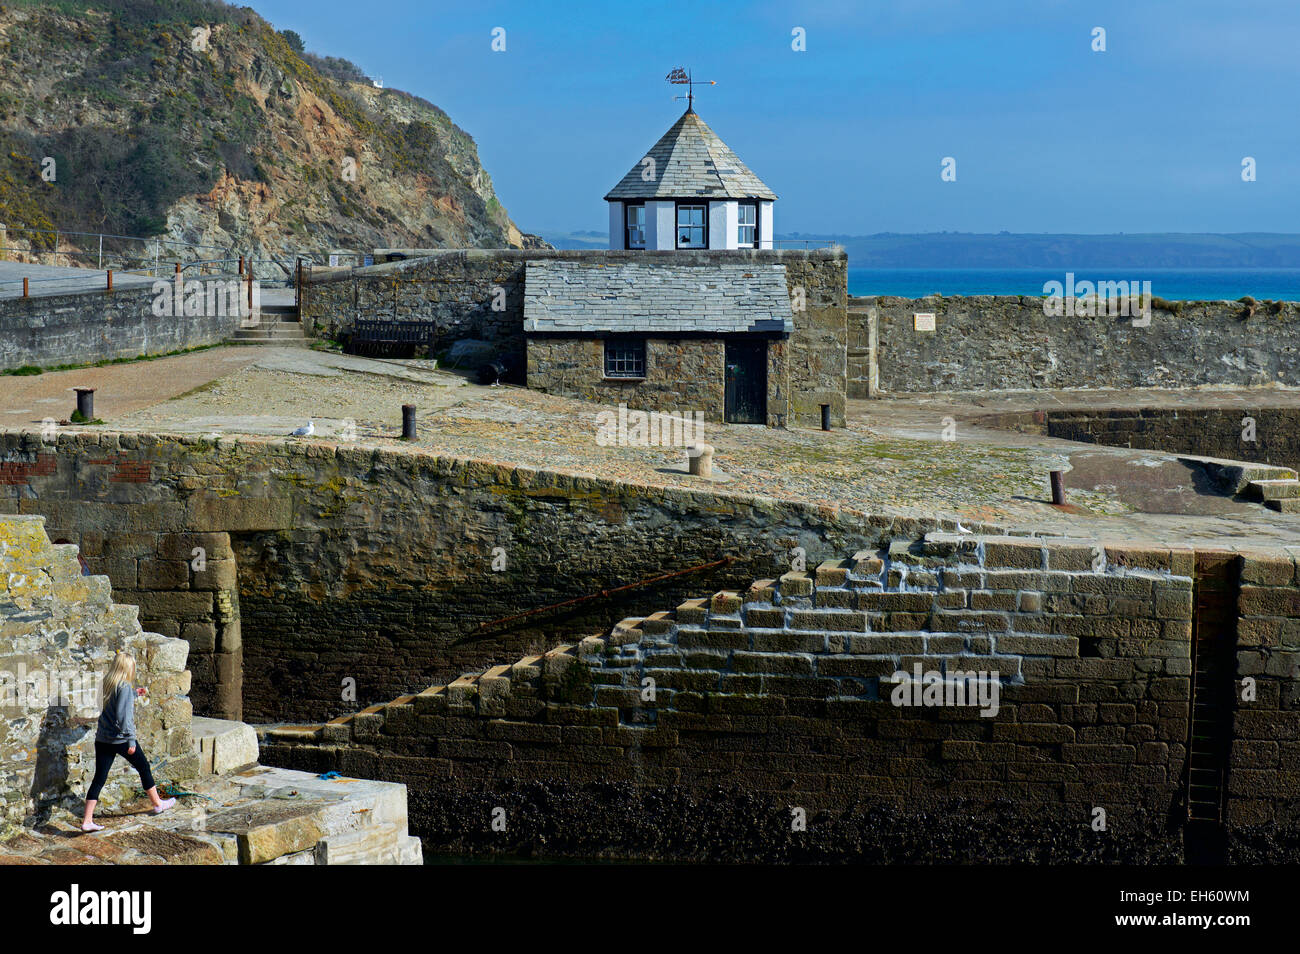 Harbour quay at Charlestown, Cornwall, England UK - Stock Image